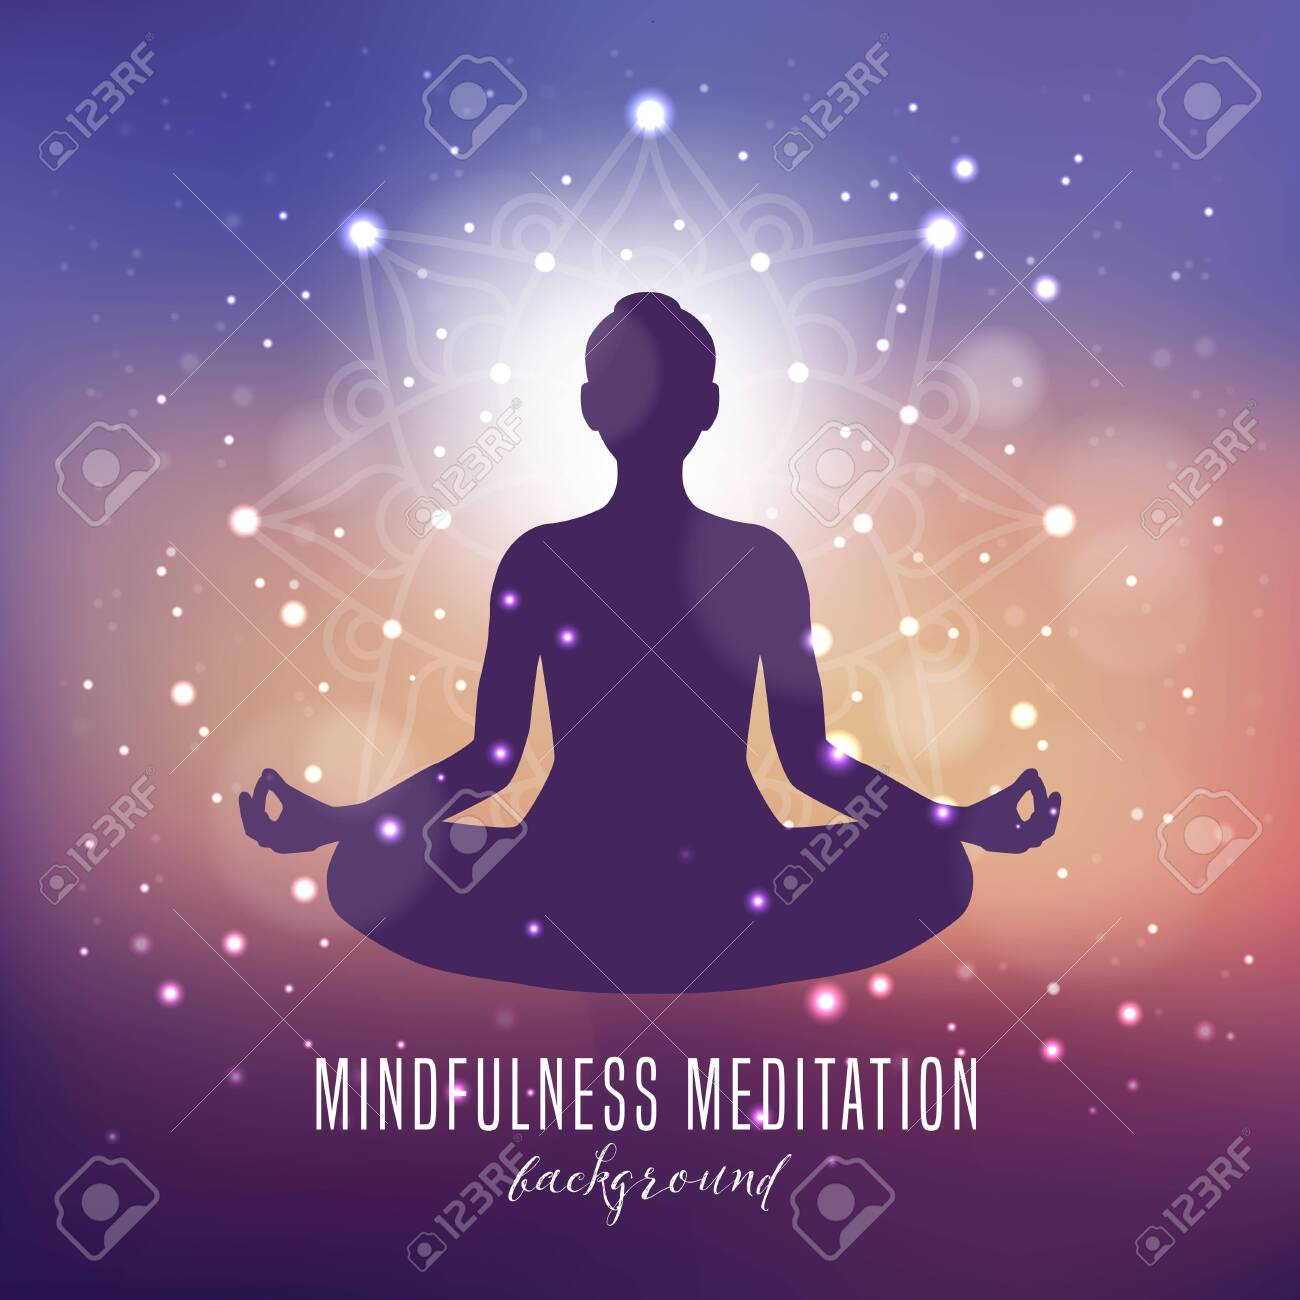 Yoga Mindfulness And Meditation Background Royalty Free Cliparts Vectors And Stock Illustration Image 124428191